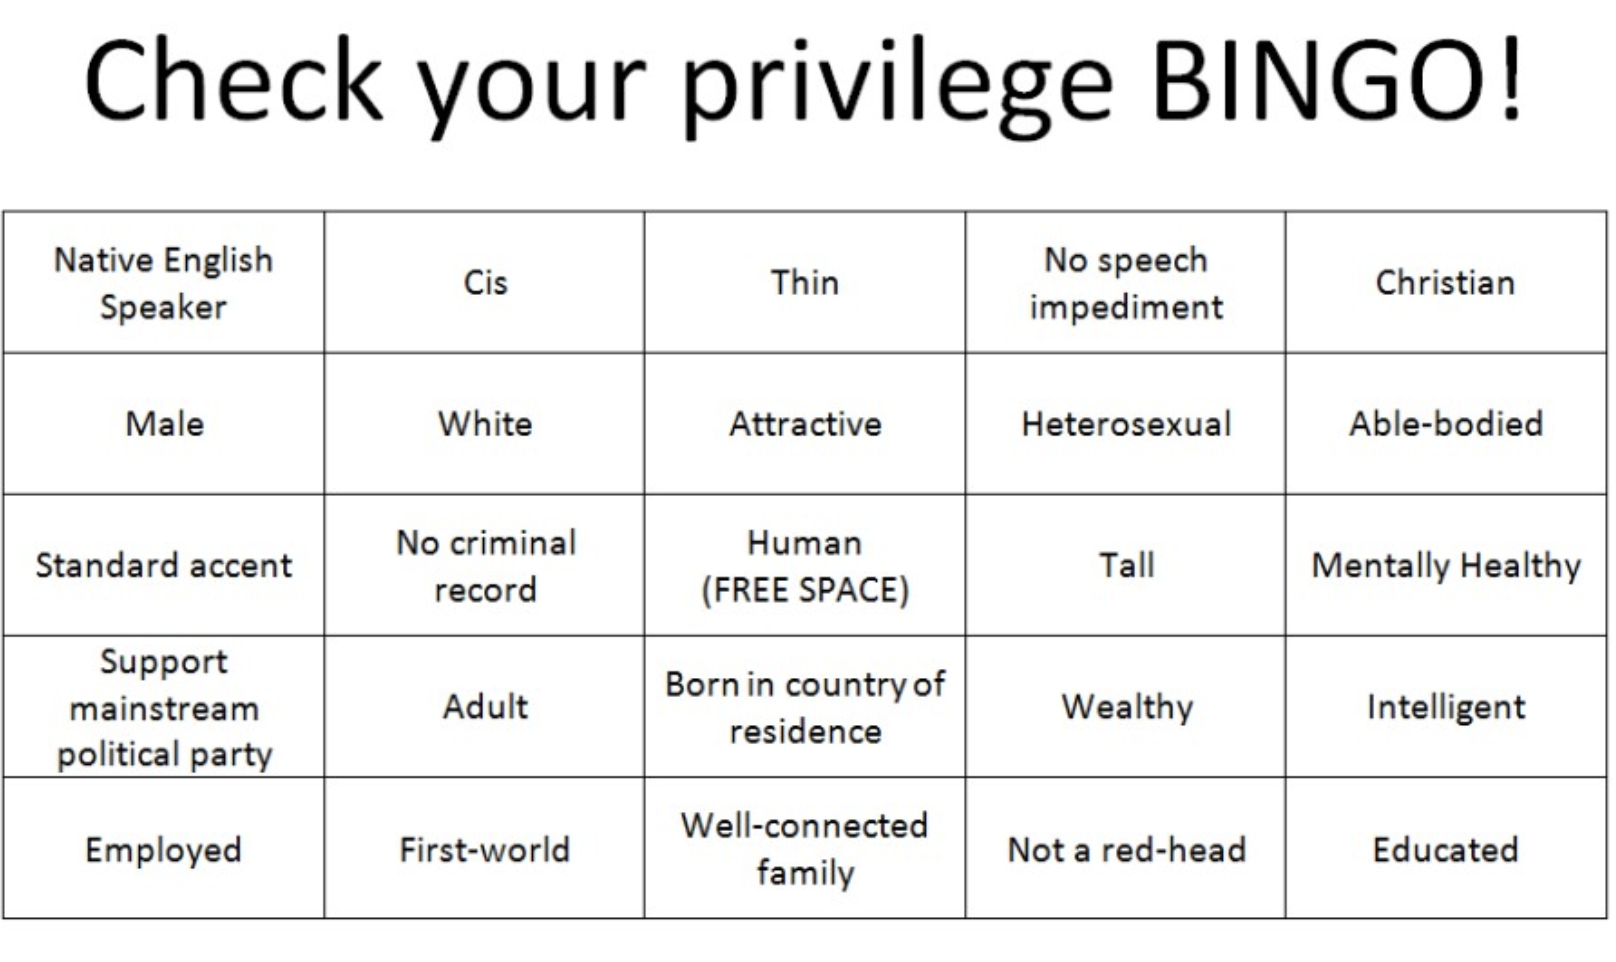 Check your privilege bingo card